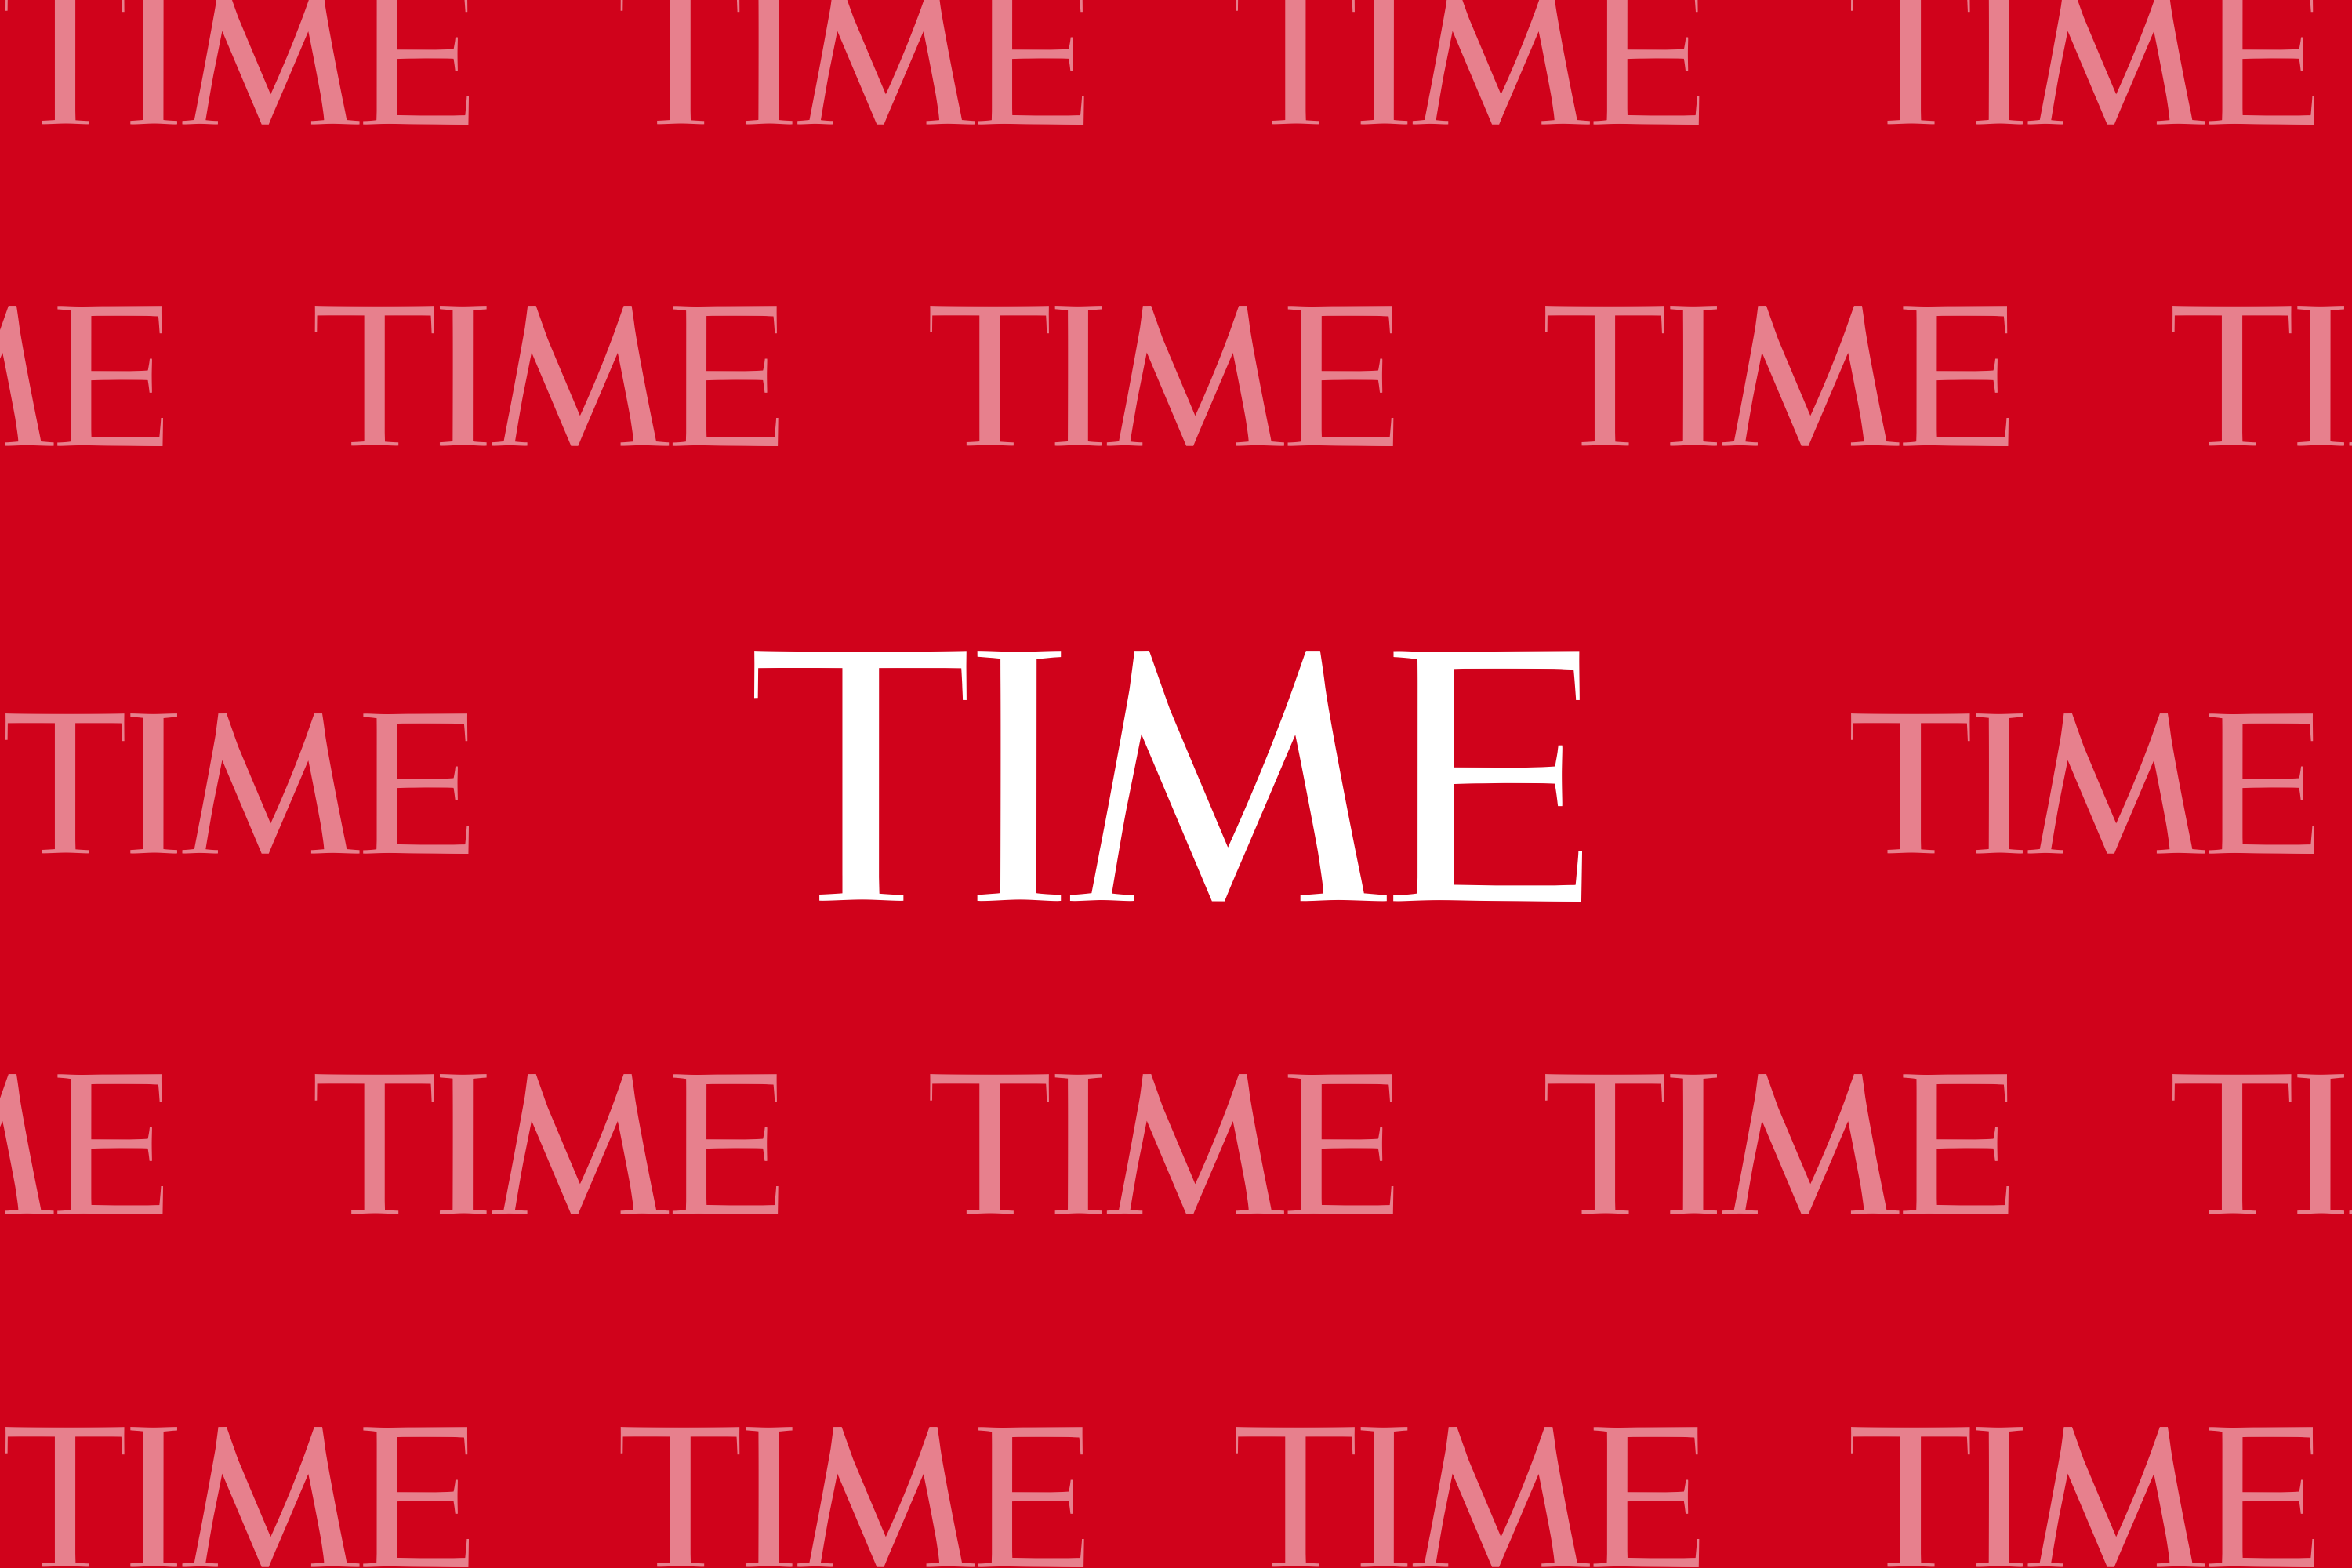 TIME Magazine default image